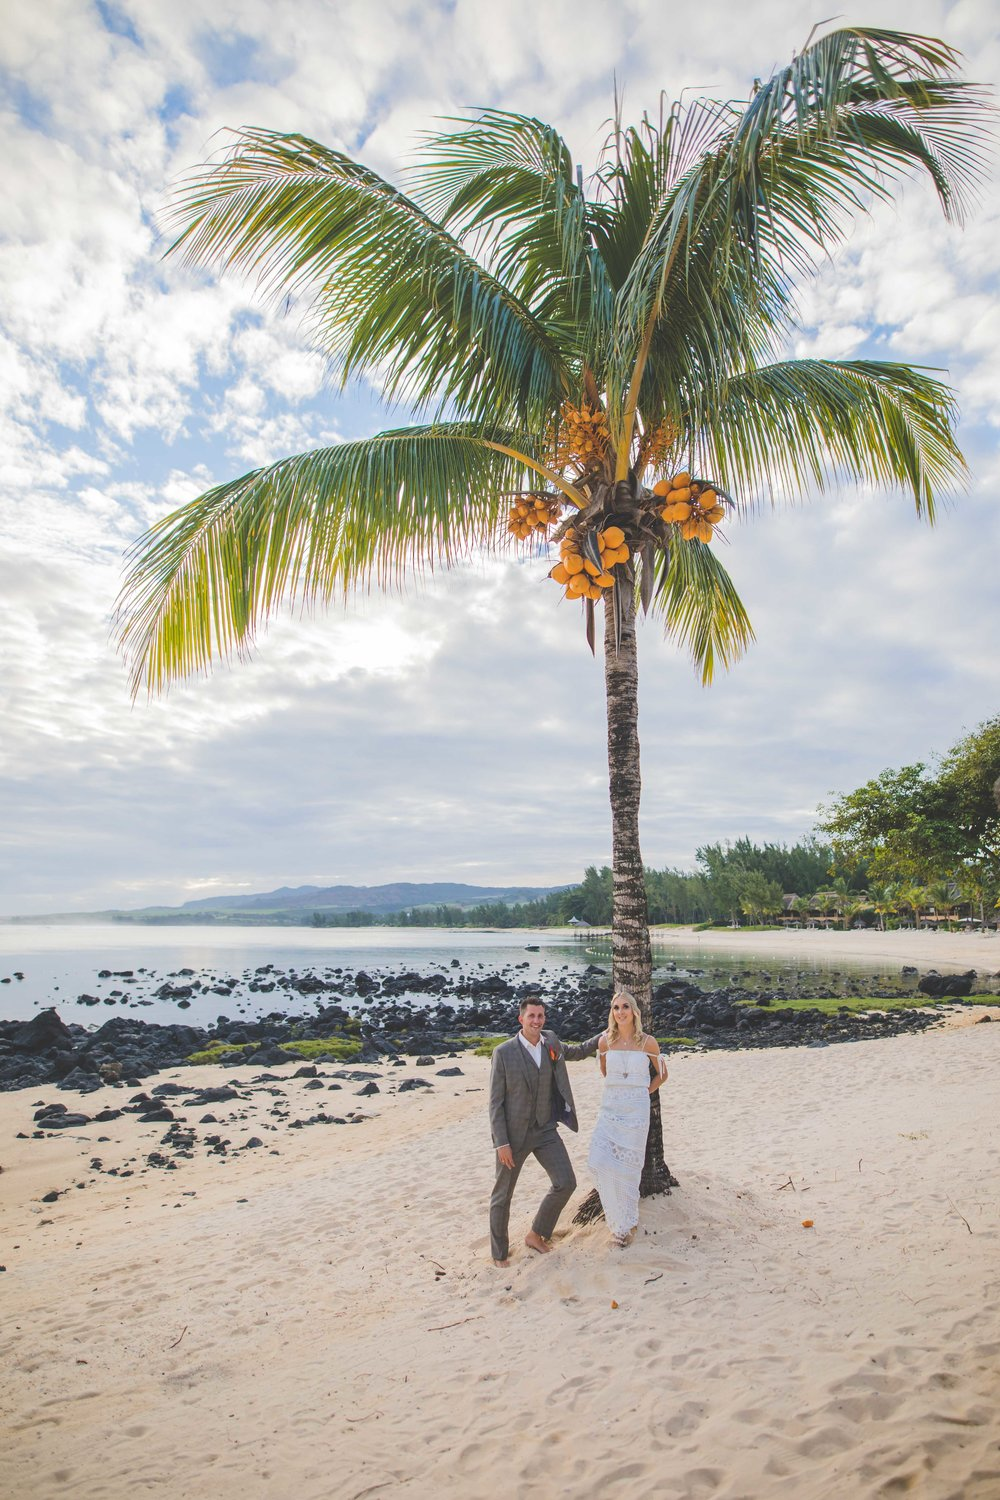 Wedding Coconut Tree in Mauritius